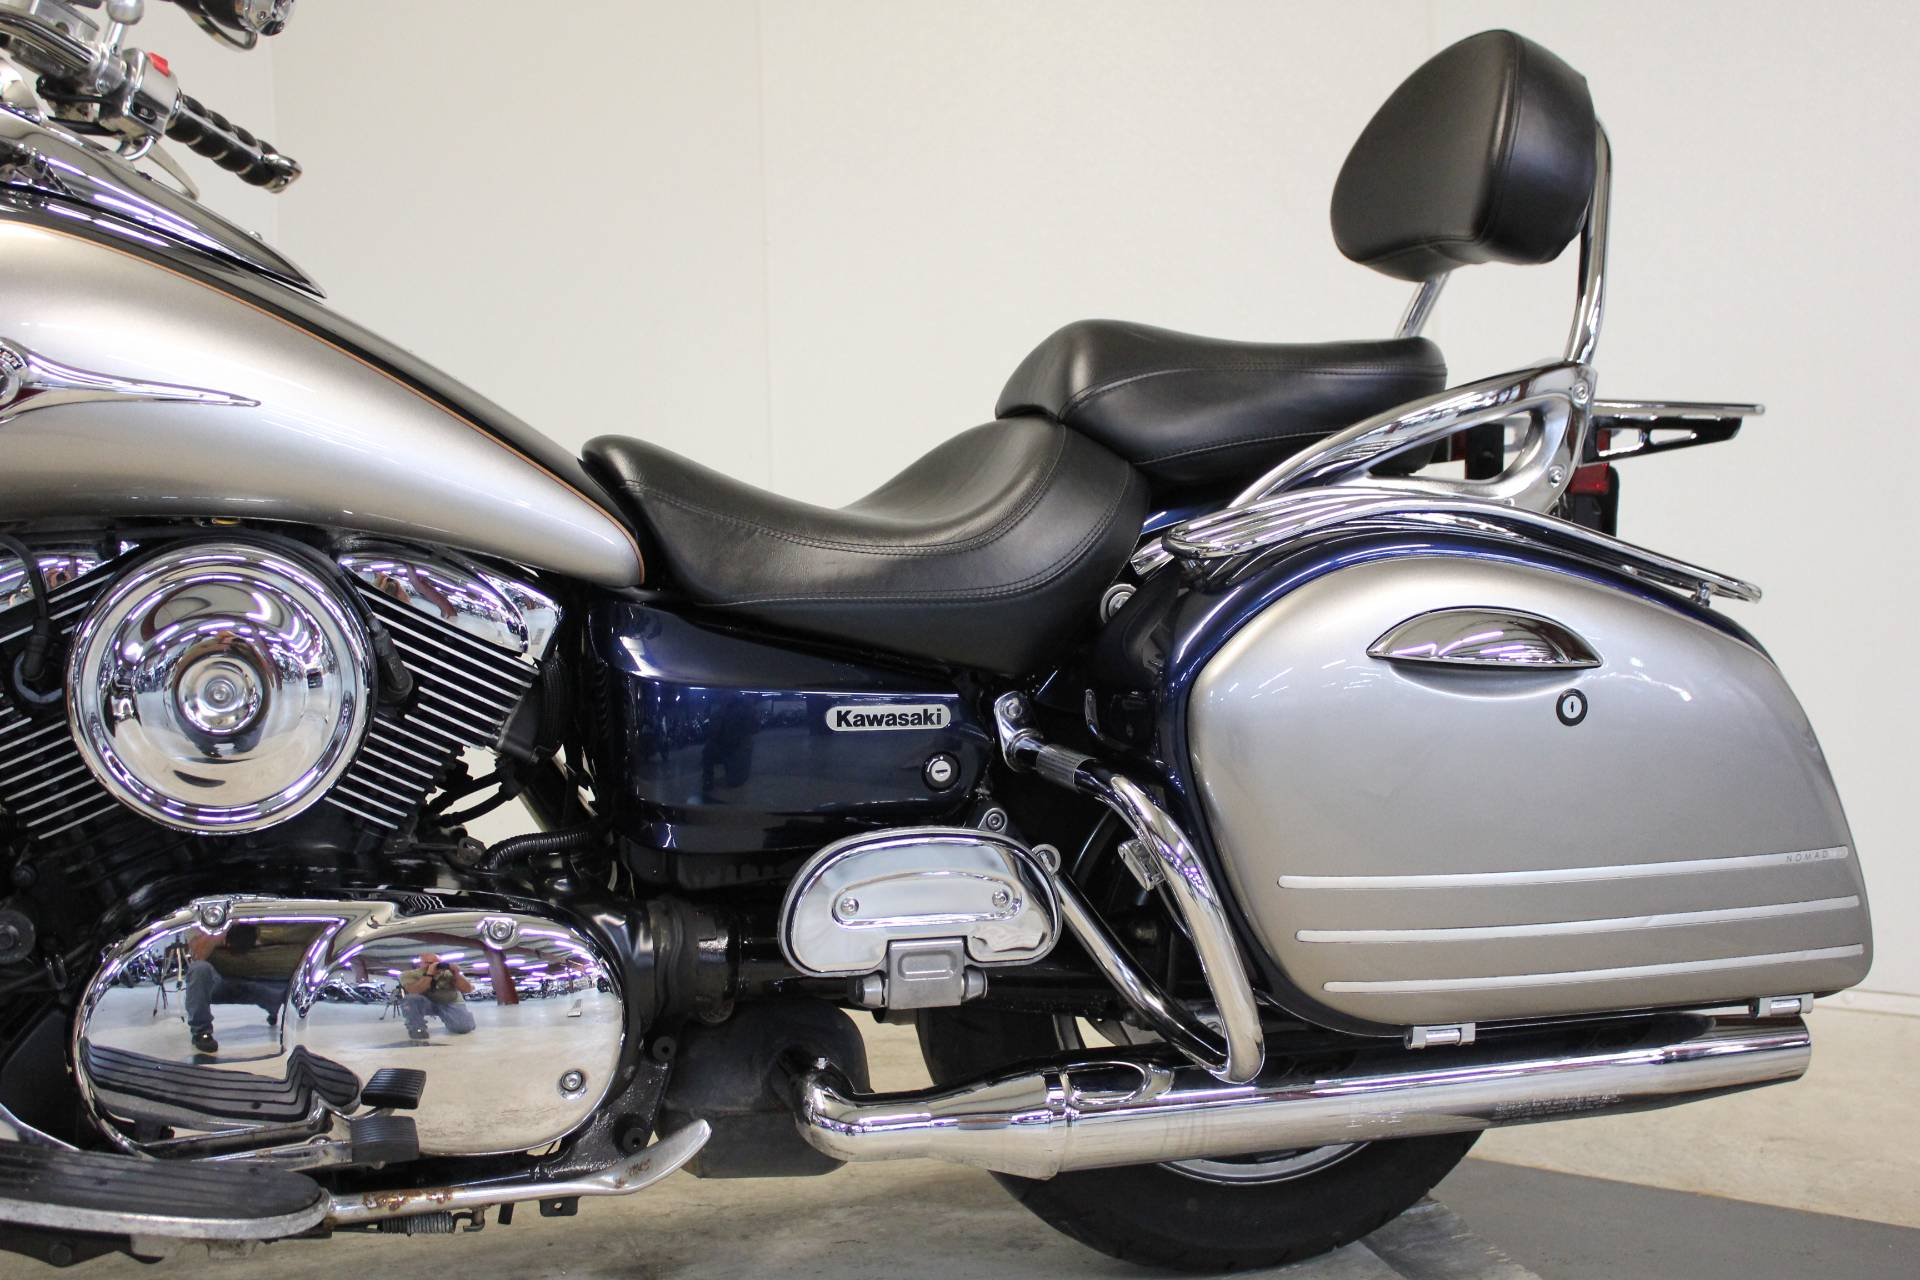 2005 Kawasaki Vulcan 1600 Nomad in Pittsfield, Massachusetts - Photo 14